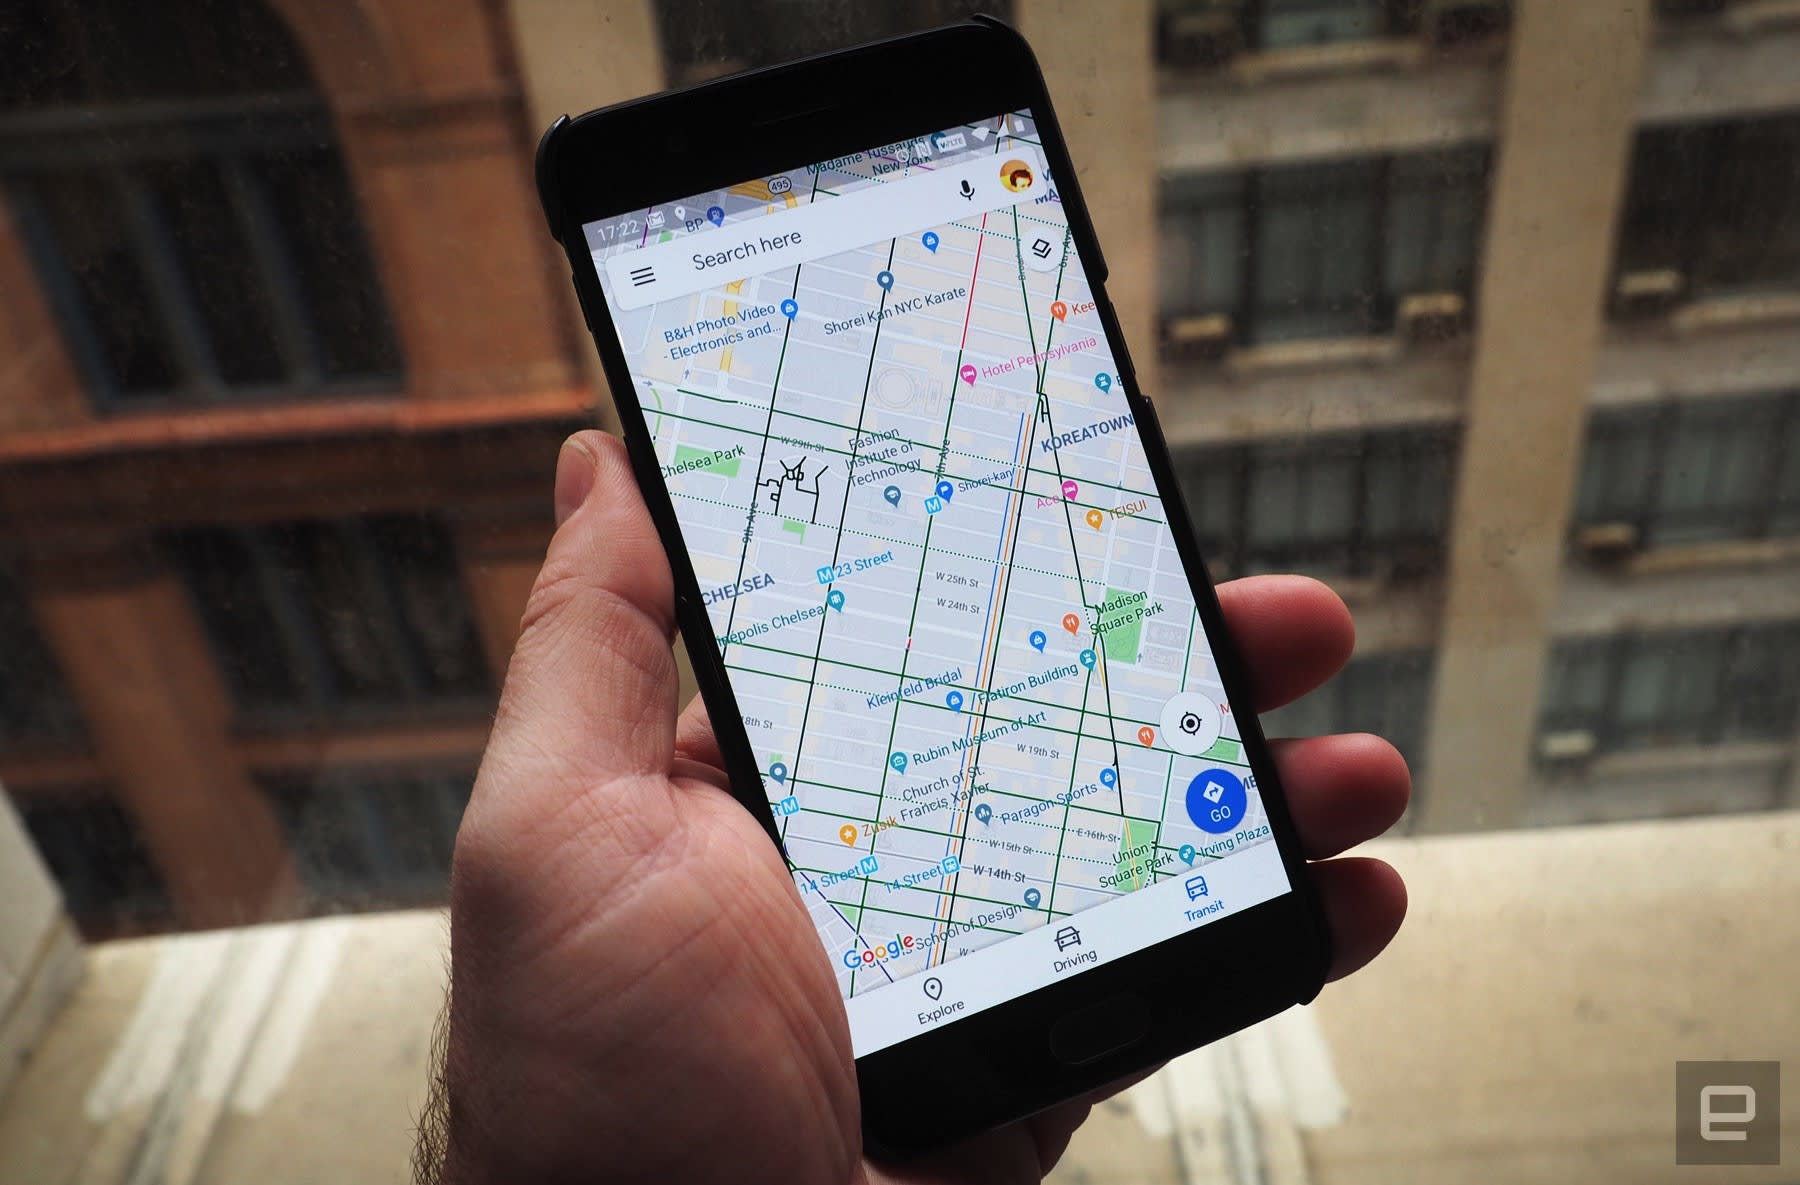 WSJ: Google Maps is flooded with 'millions' of fake business listings (updated)